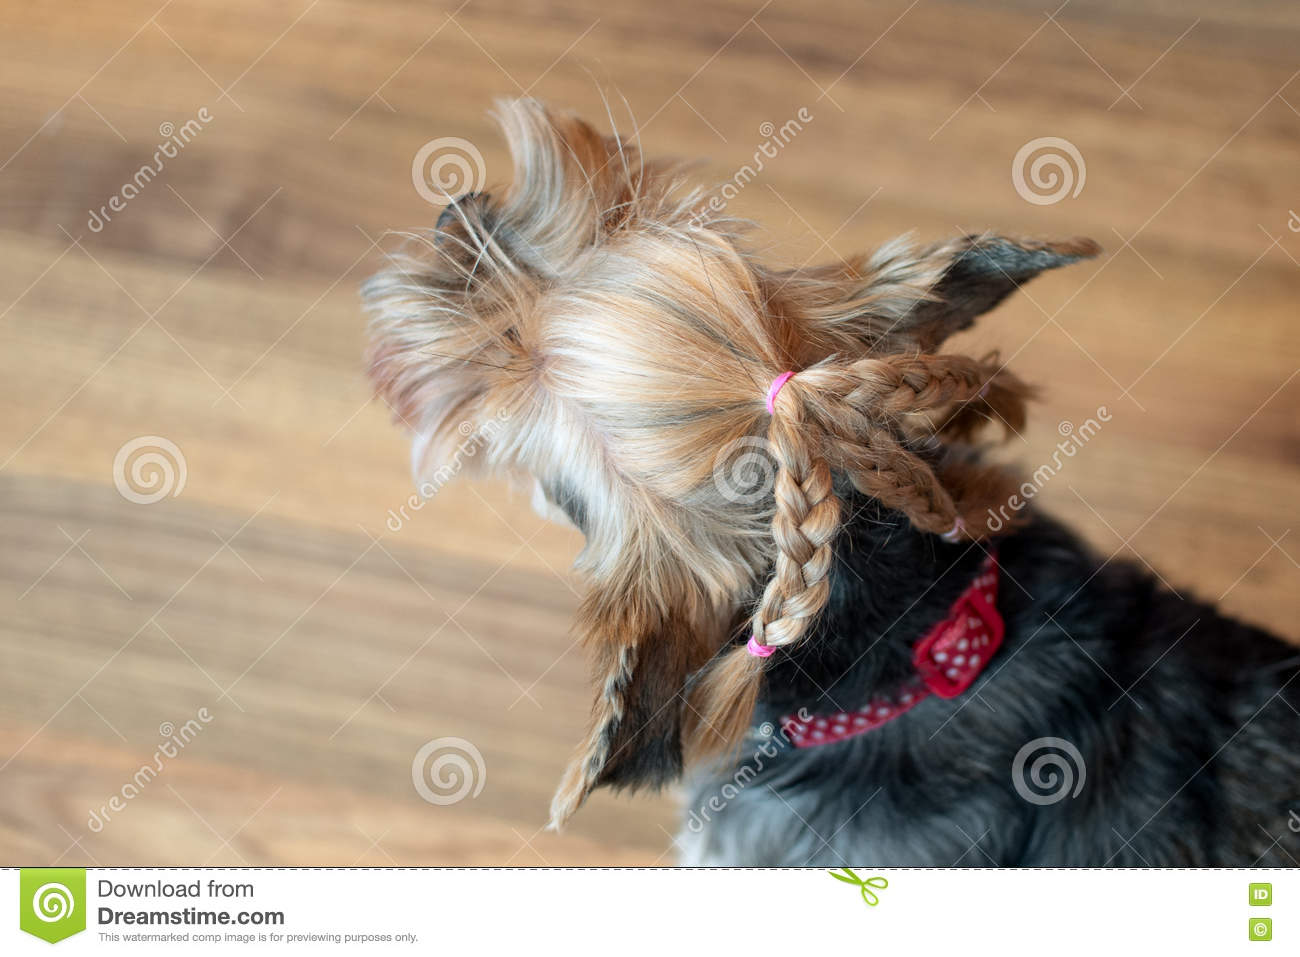 Yorkshire Terrier Stock Image Image Of Haircut Isolated 73284377